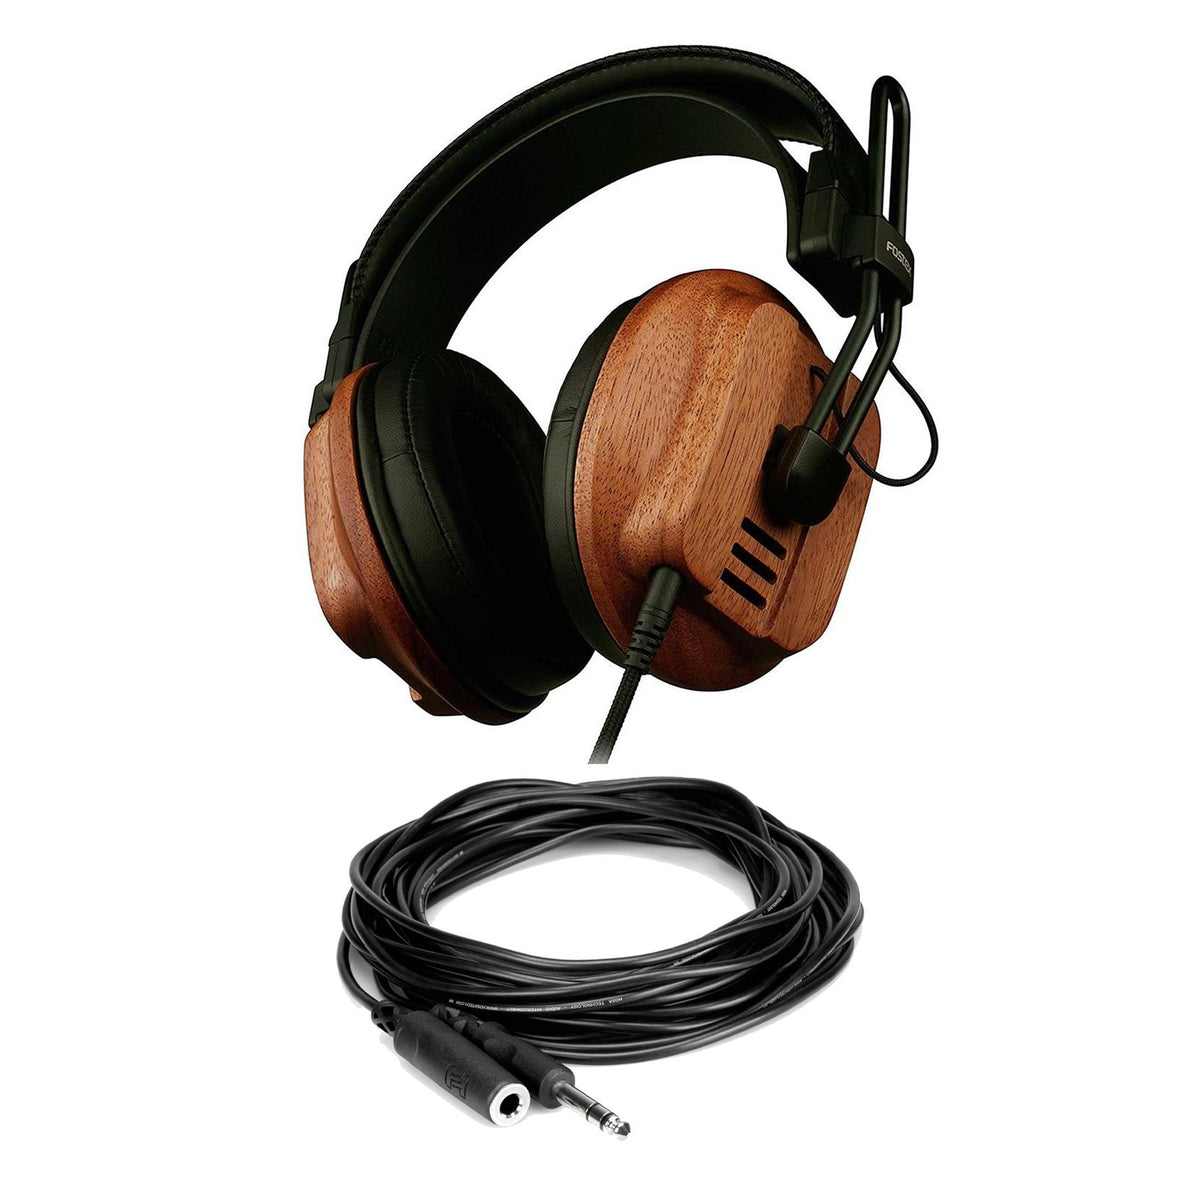 Fostex T60RP Headphones Bundle with 10-Foot Headphone Extension Cable